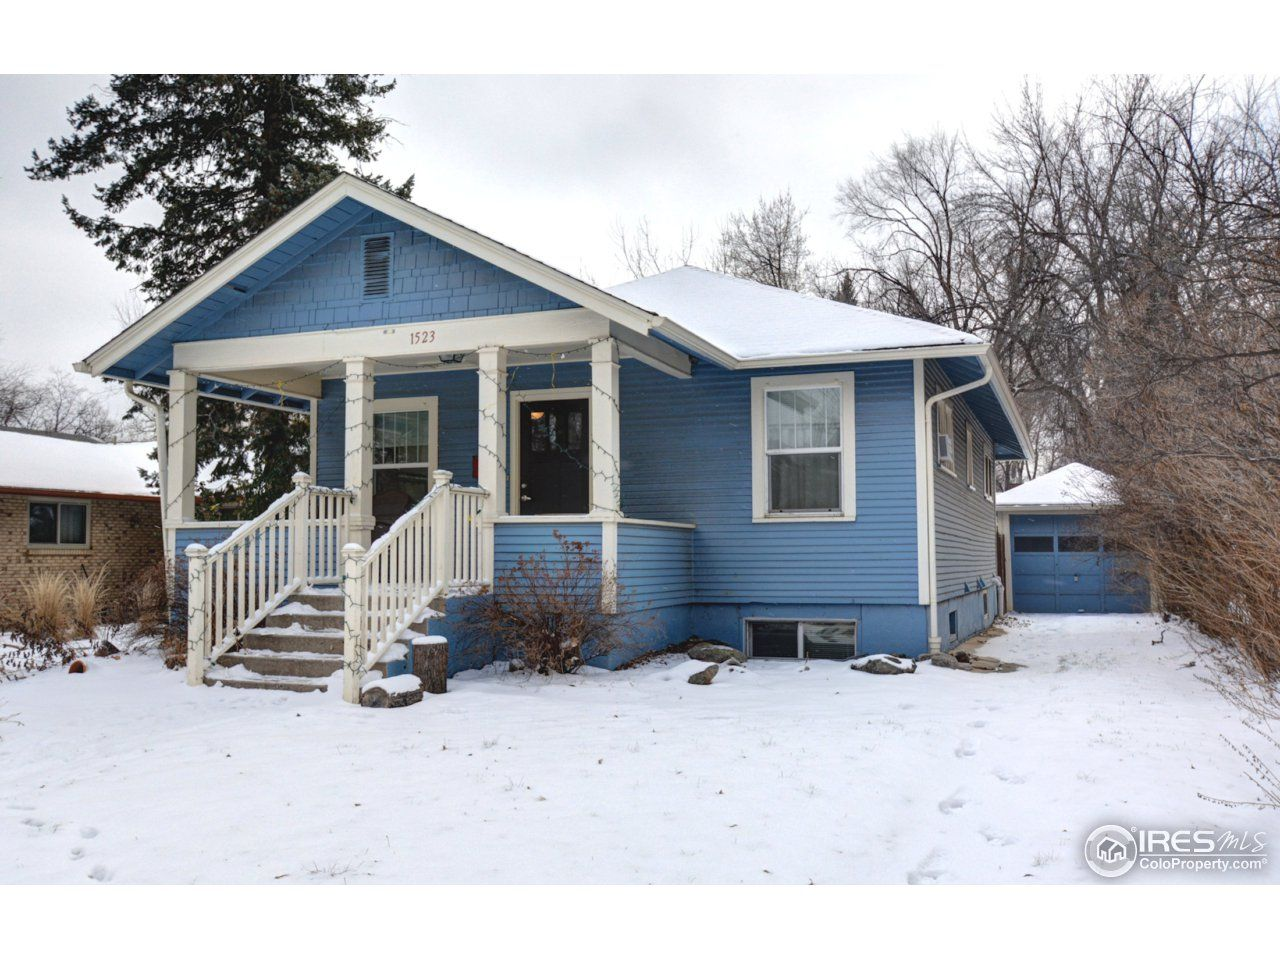 1523 w mountain ave for sale - fort collins, co | trulia